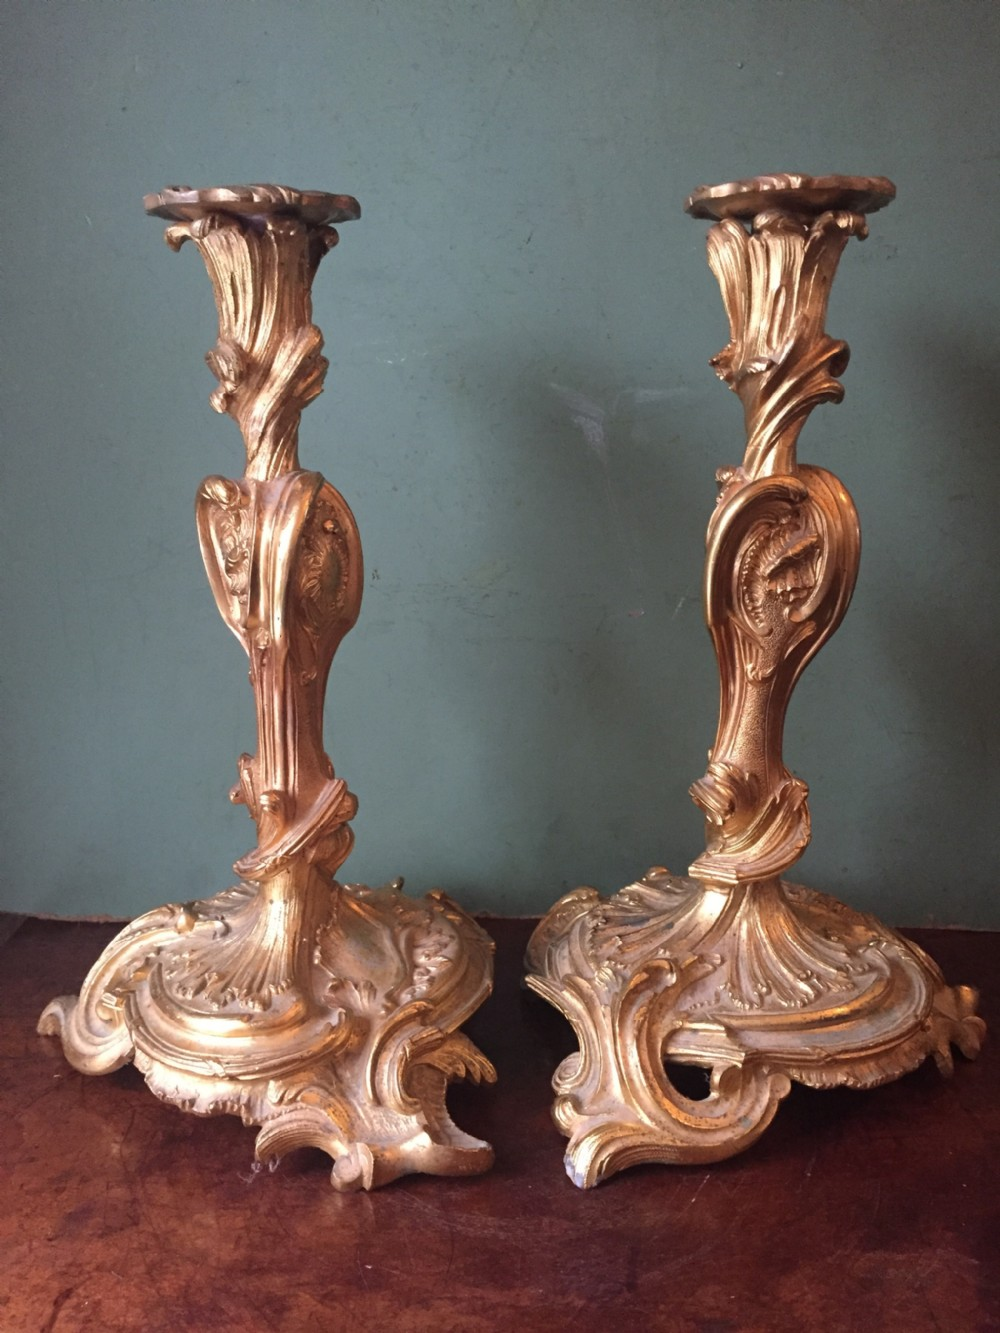 pair of mid c19th french ormolu bronze candlesticks of louis xvi rococo design